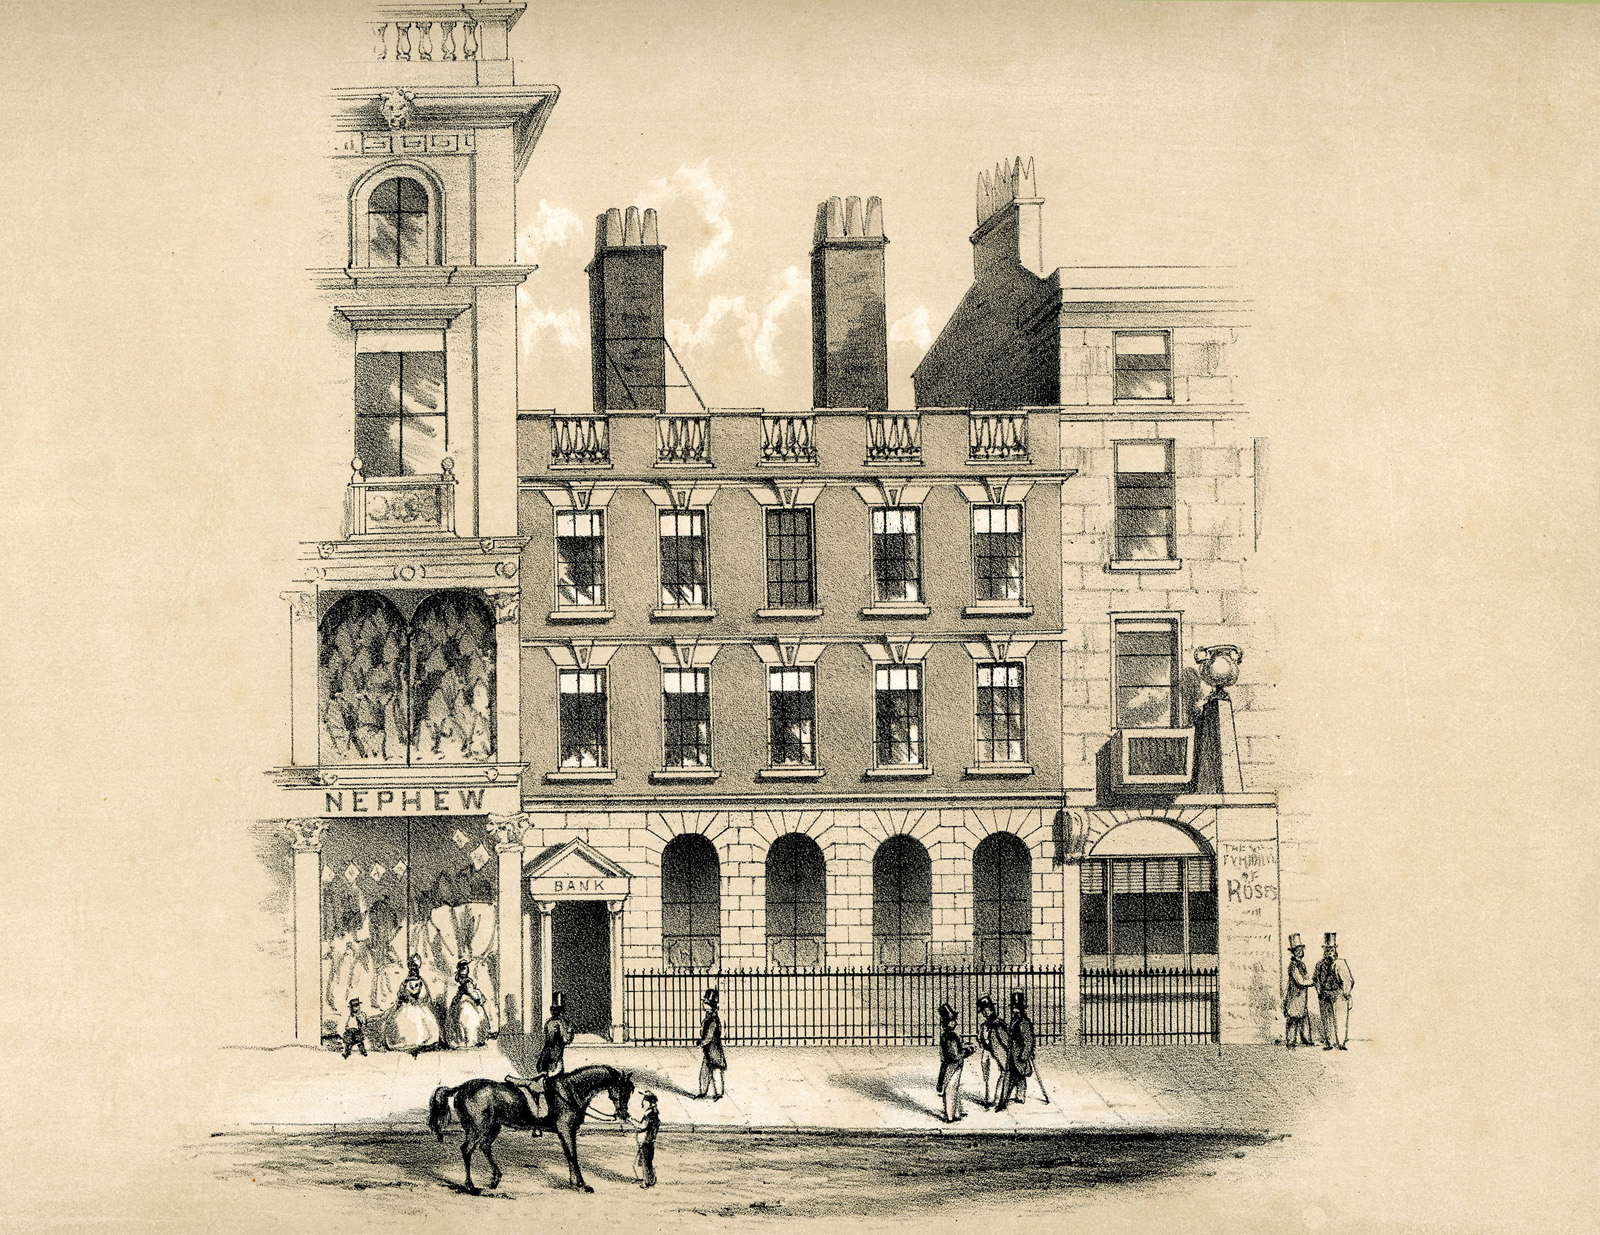 Attwood and Spooner's Bank, New Street